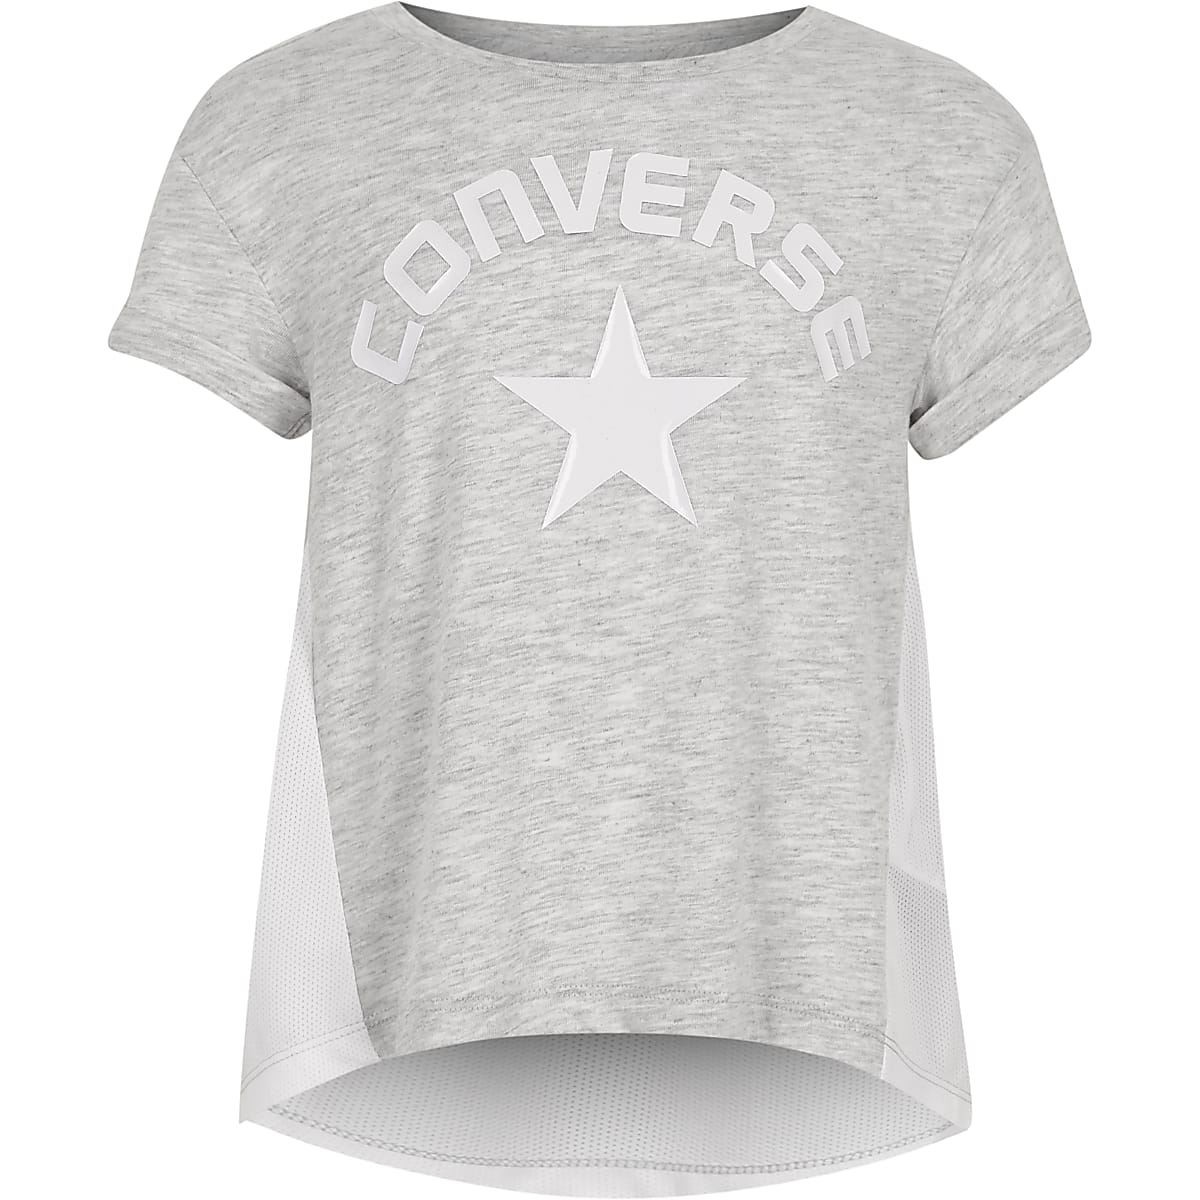 Girls Converse grey lunar rock T shirt